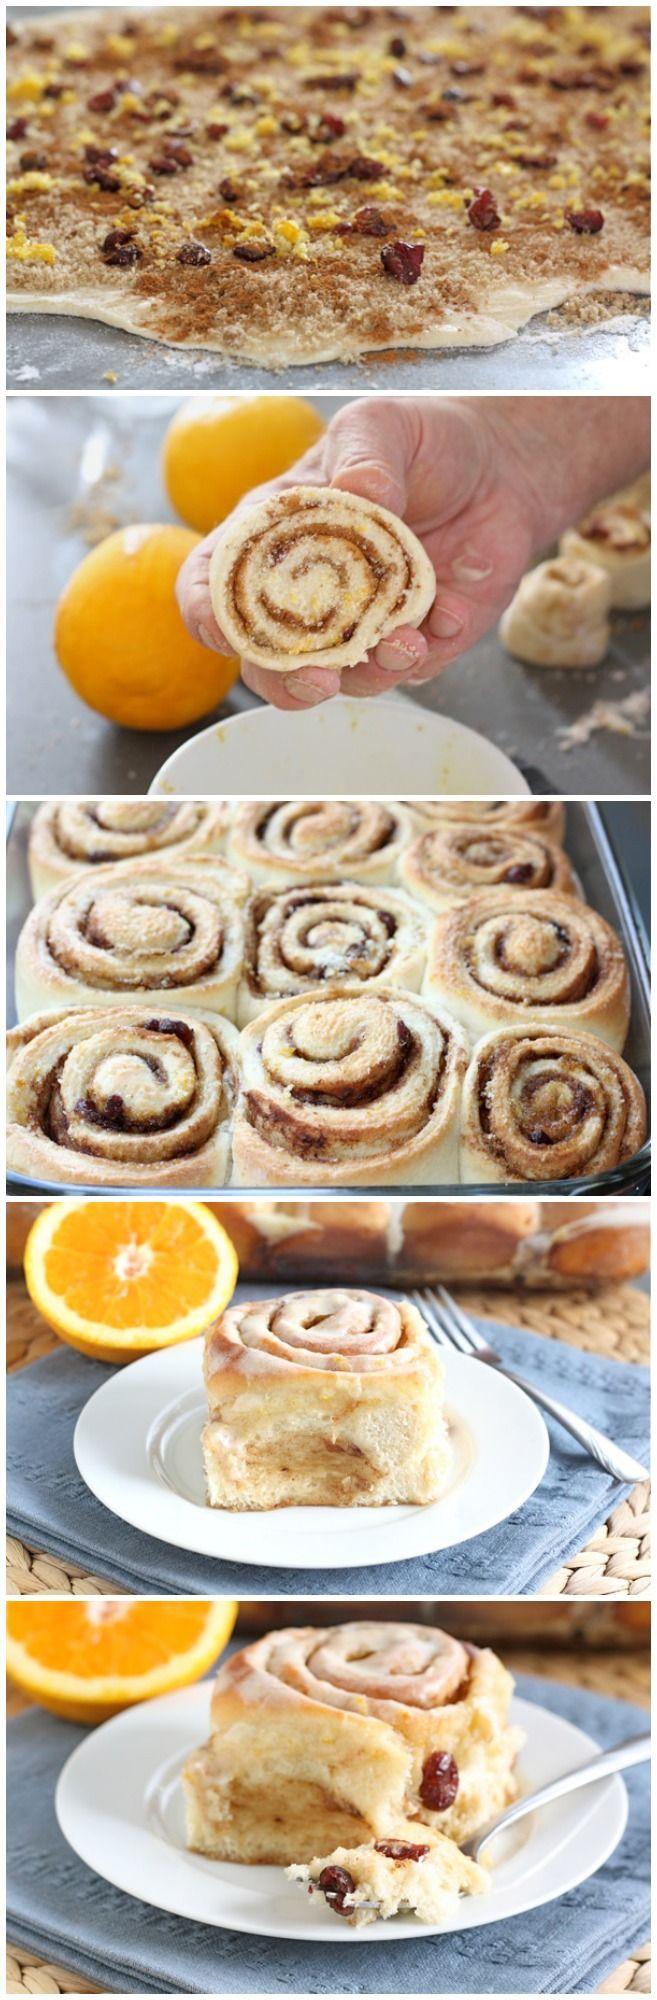 Cranberry Orange Cinnamon Rolls Recipe on twopeasandtheirpod.com Perfect for Christmas morning or gift giving!